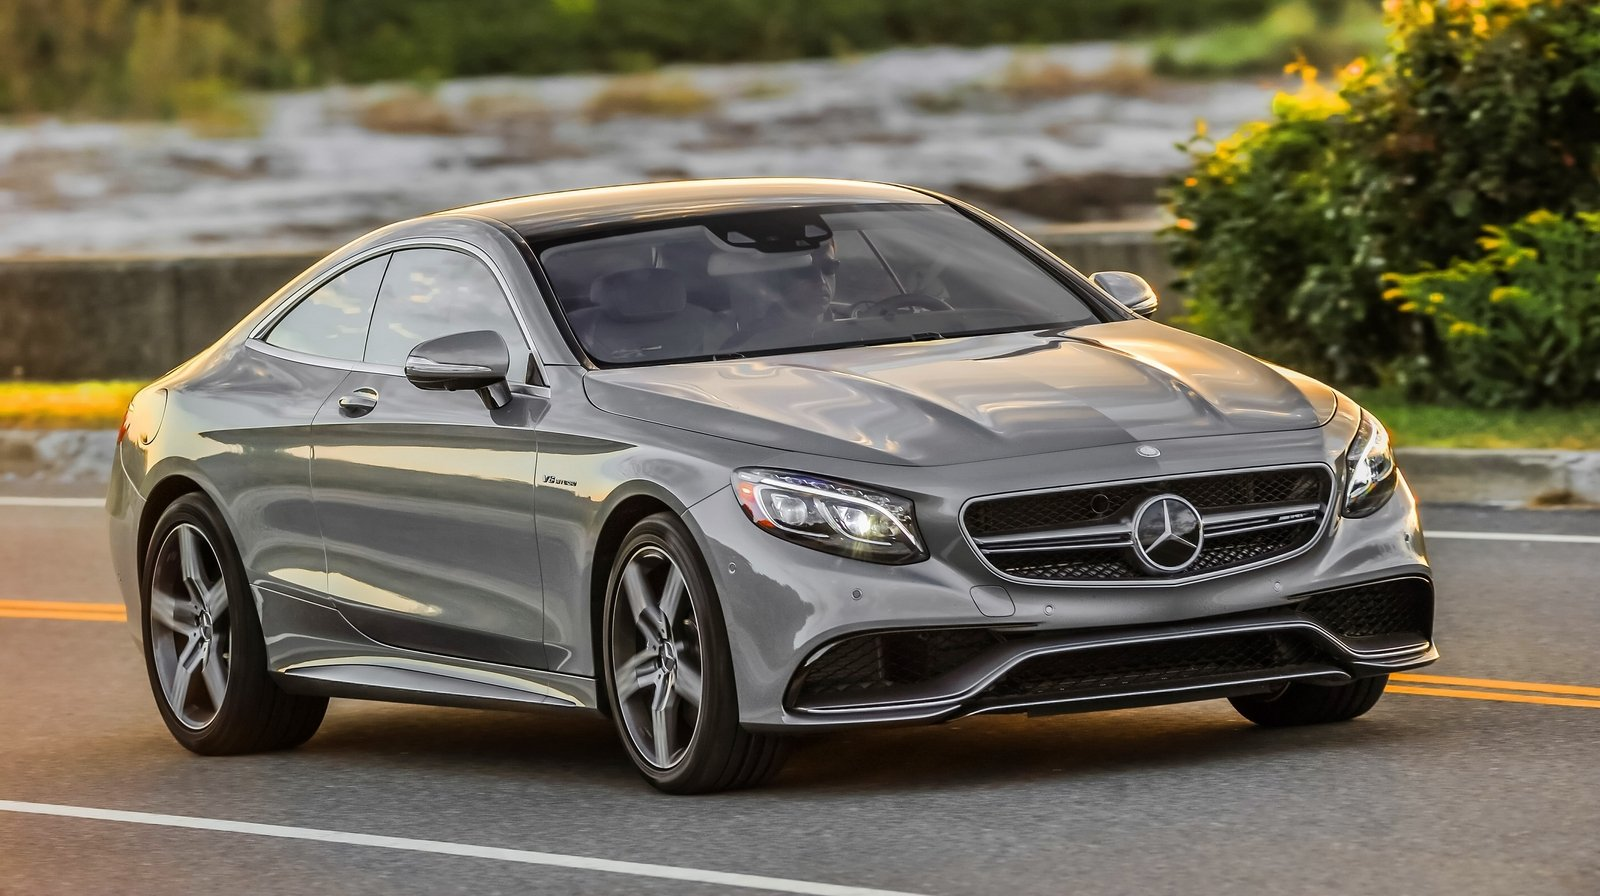 2015 mercedes s63 amg coupe edition 1 top speed. Black Bedroom Furniture Sets. Home Design Ideas